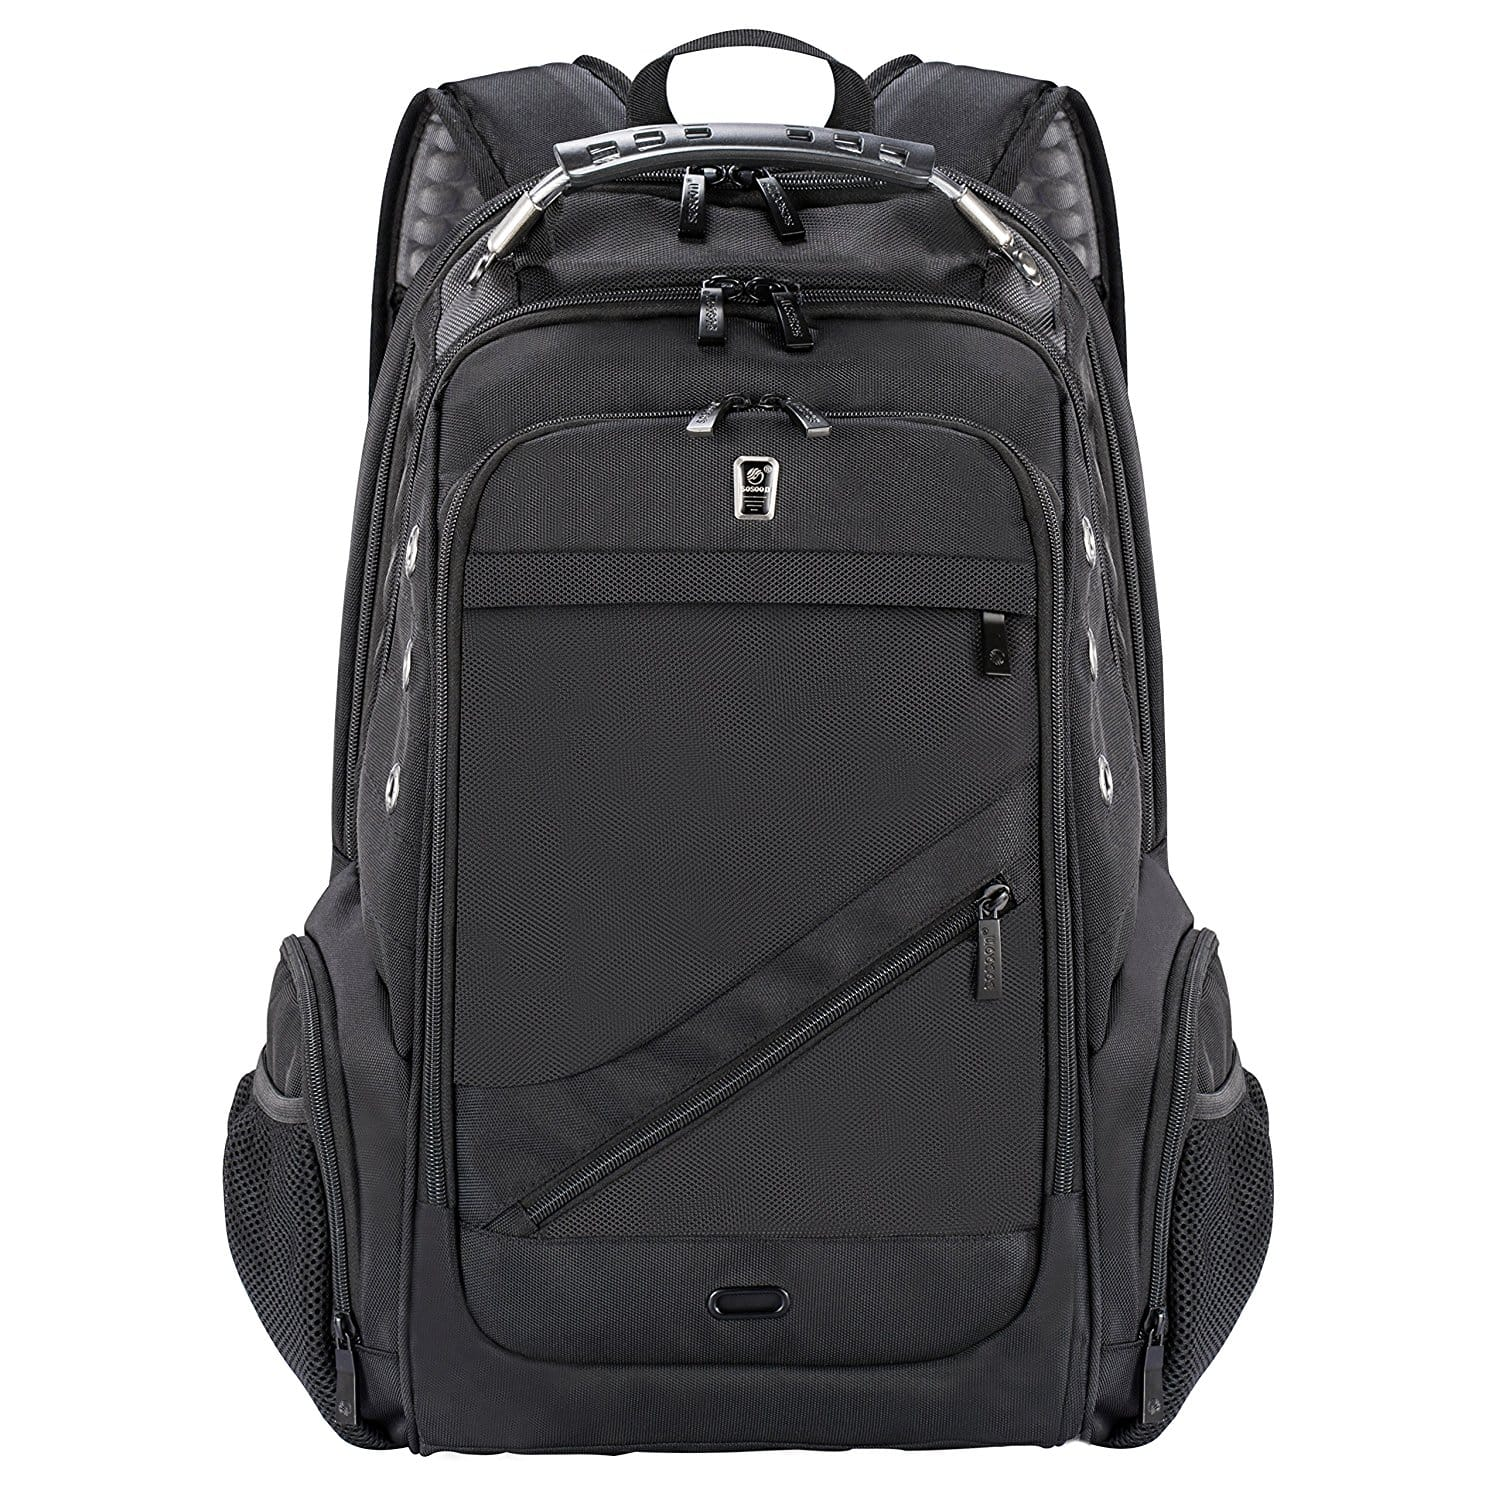 15.6 Inch Anti-Theft Water Resistant Laptop Backpack with USB Charging Port $25.89 @ Amazon